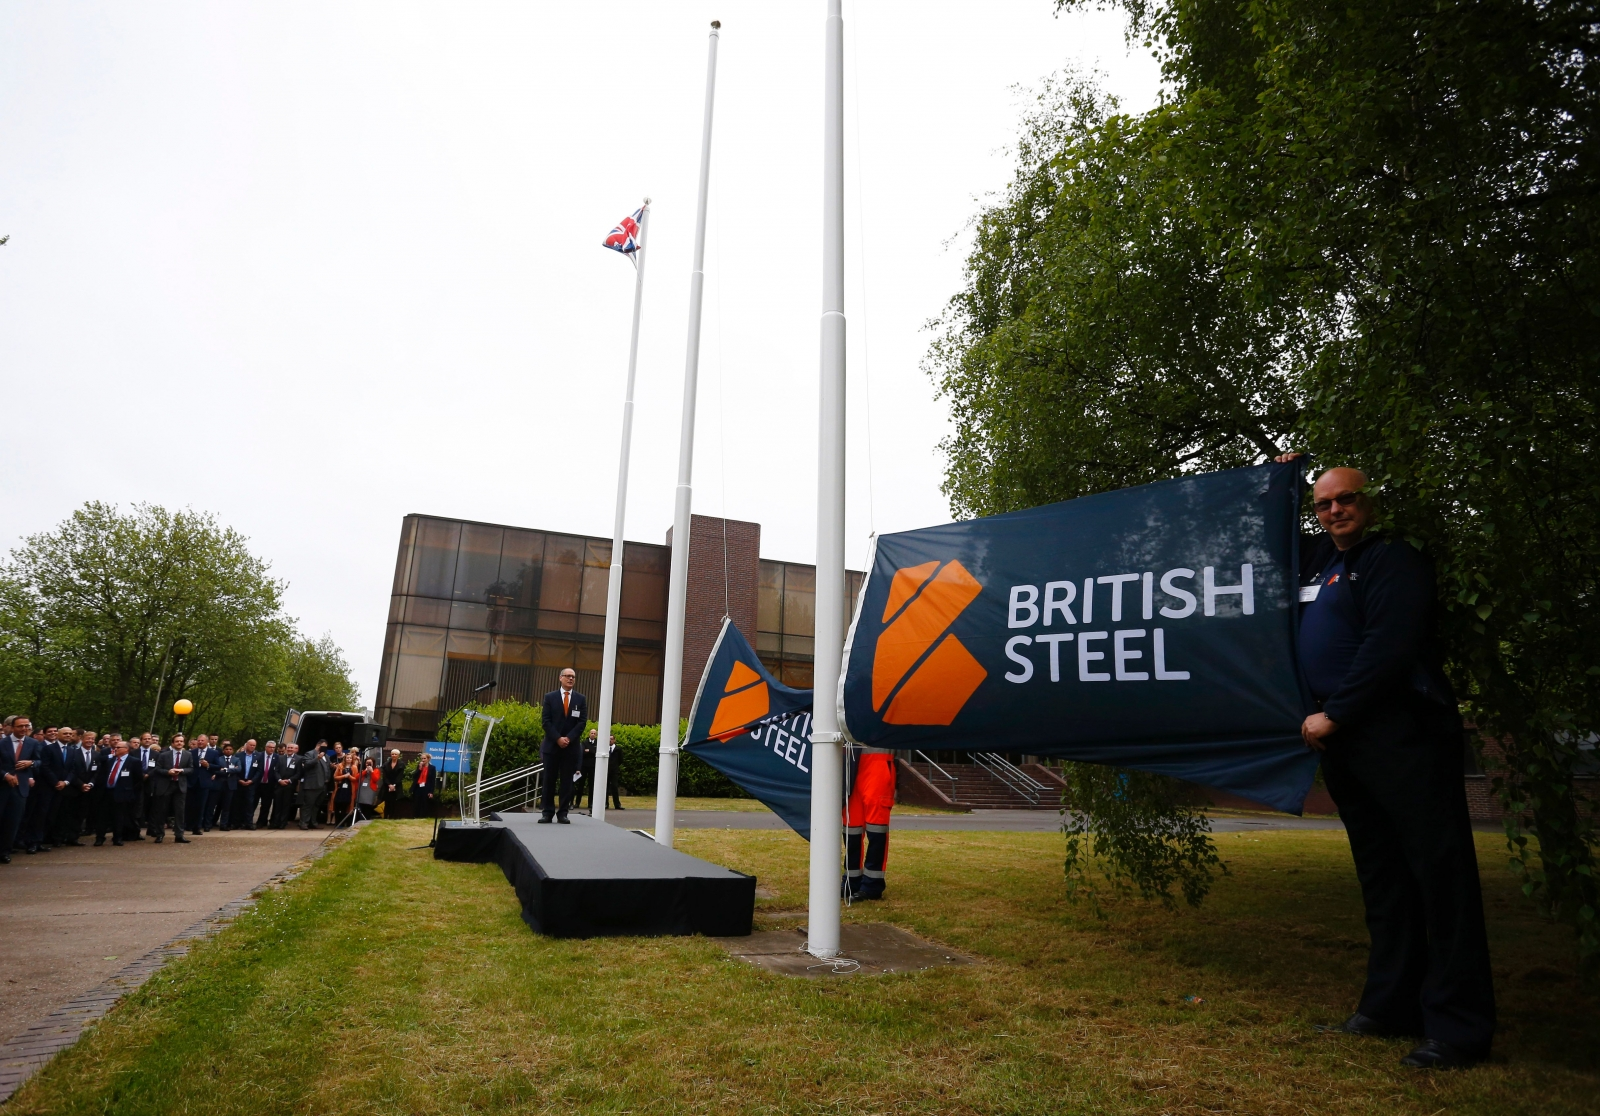 British Steel returns to profits in the first 100 days after Tata sale, executive chairman says